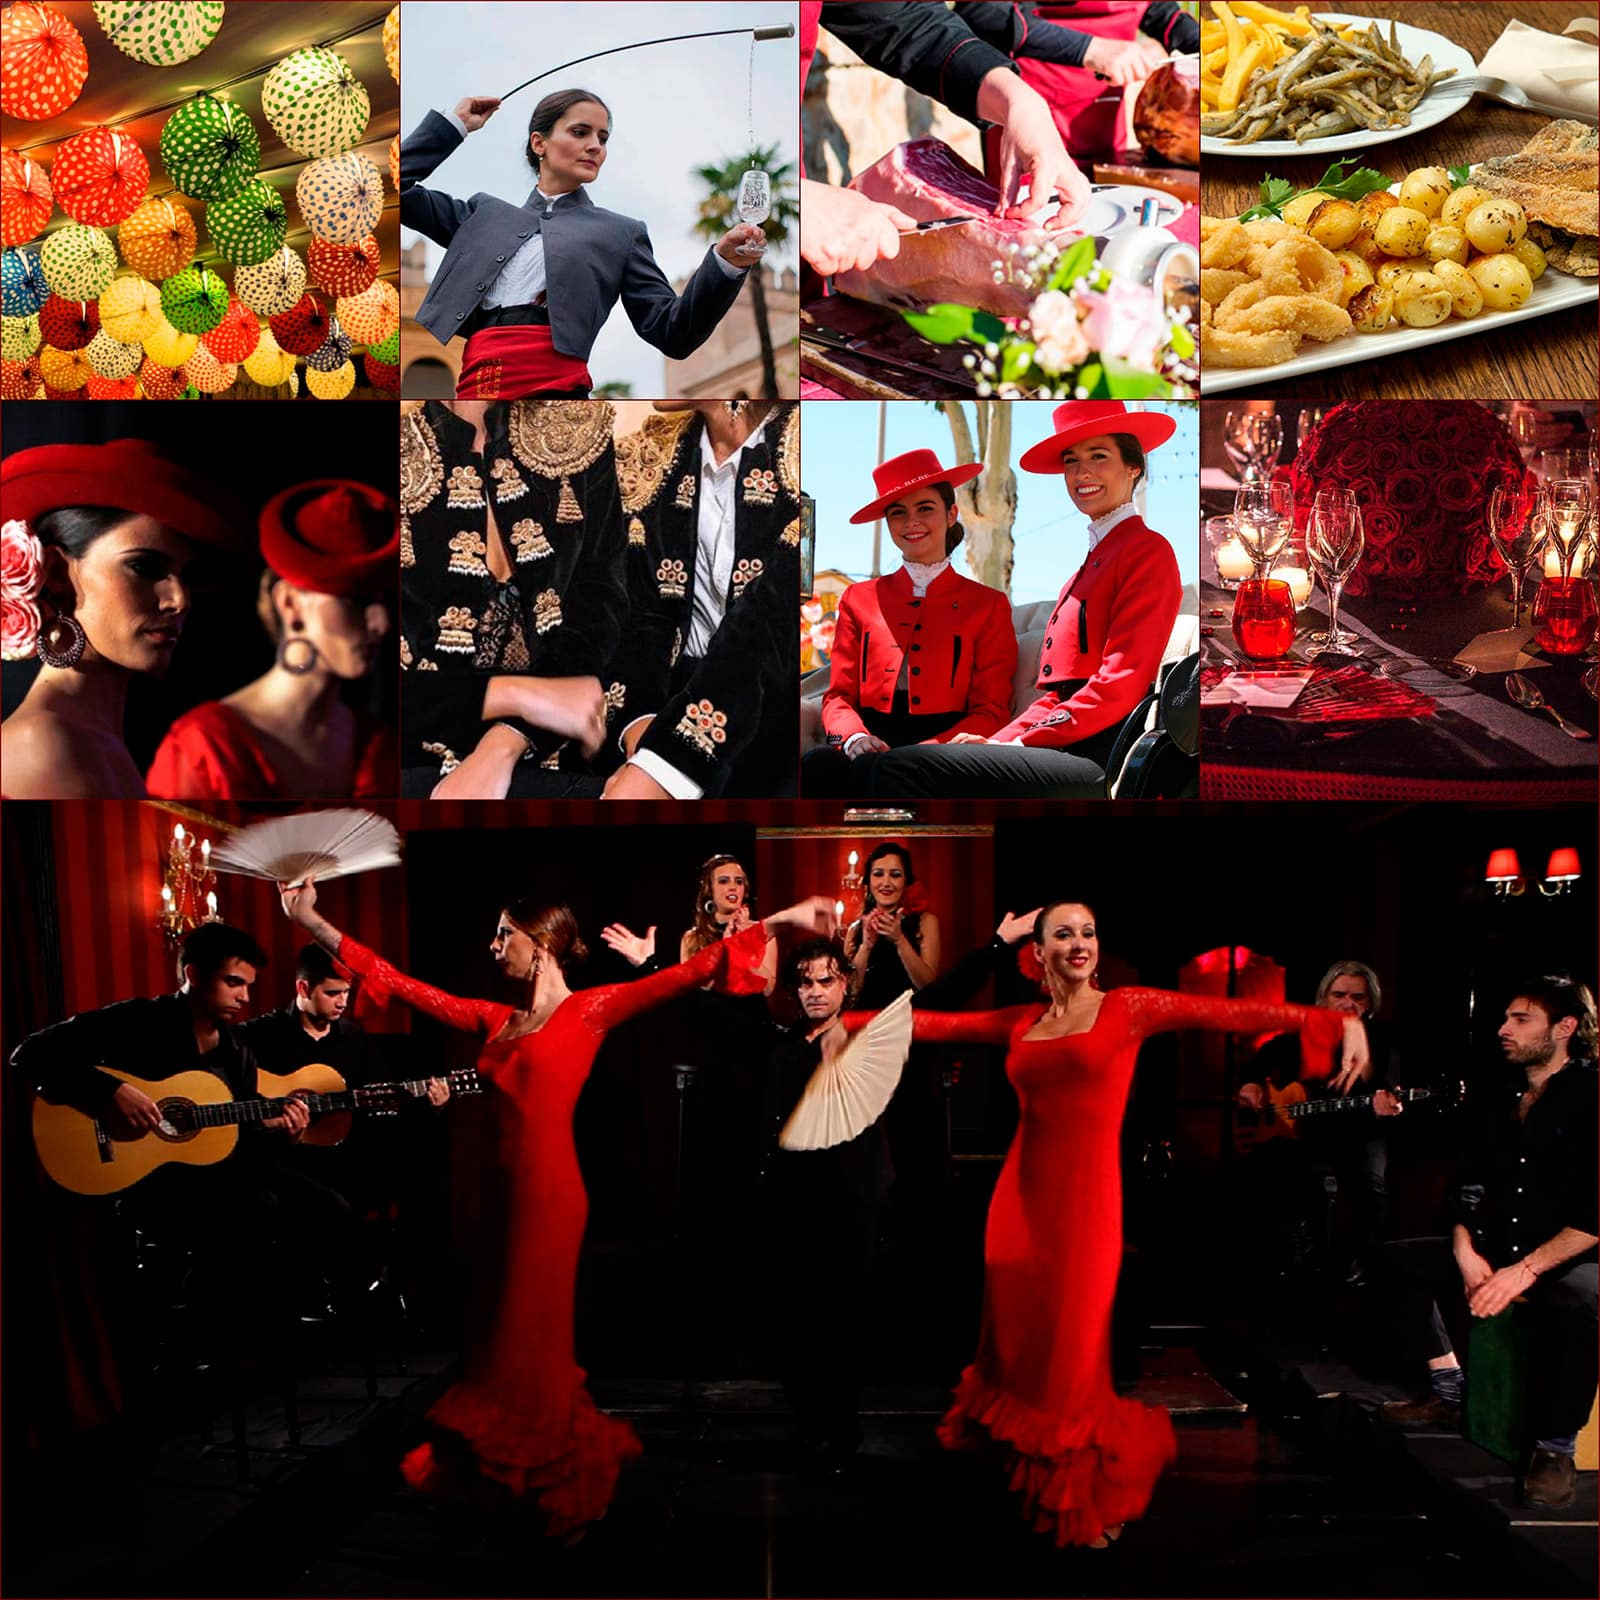 Dinner with flamenco show in Barcelona. Your private gala and Flamenco dinner.